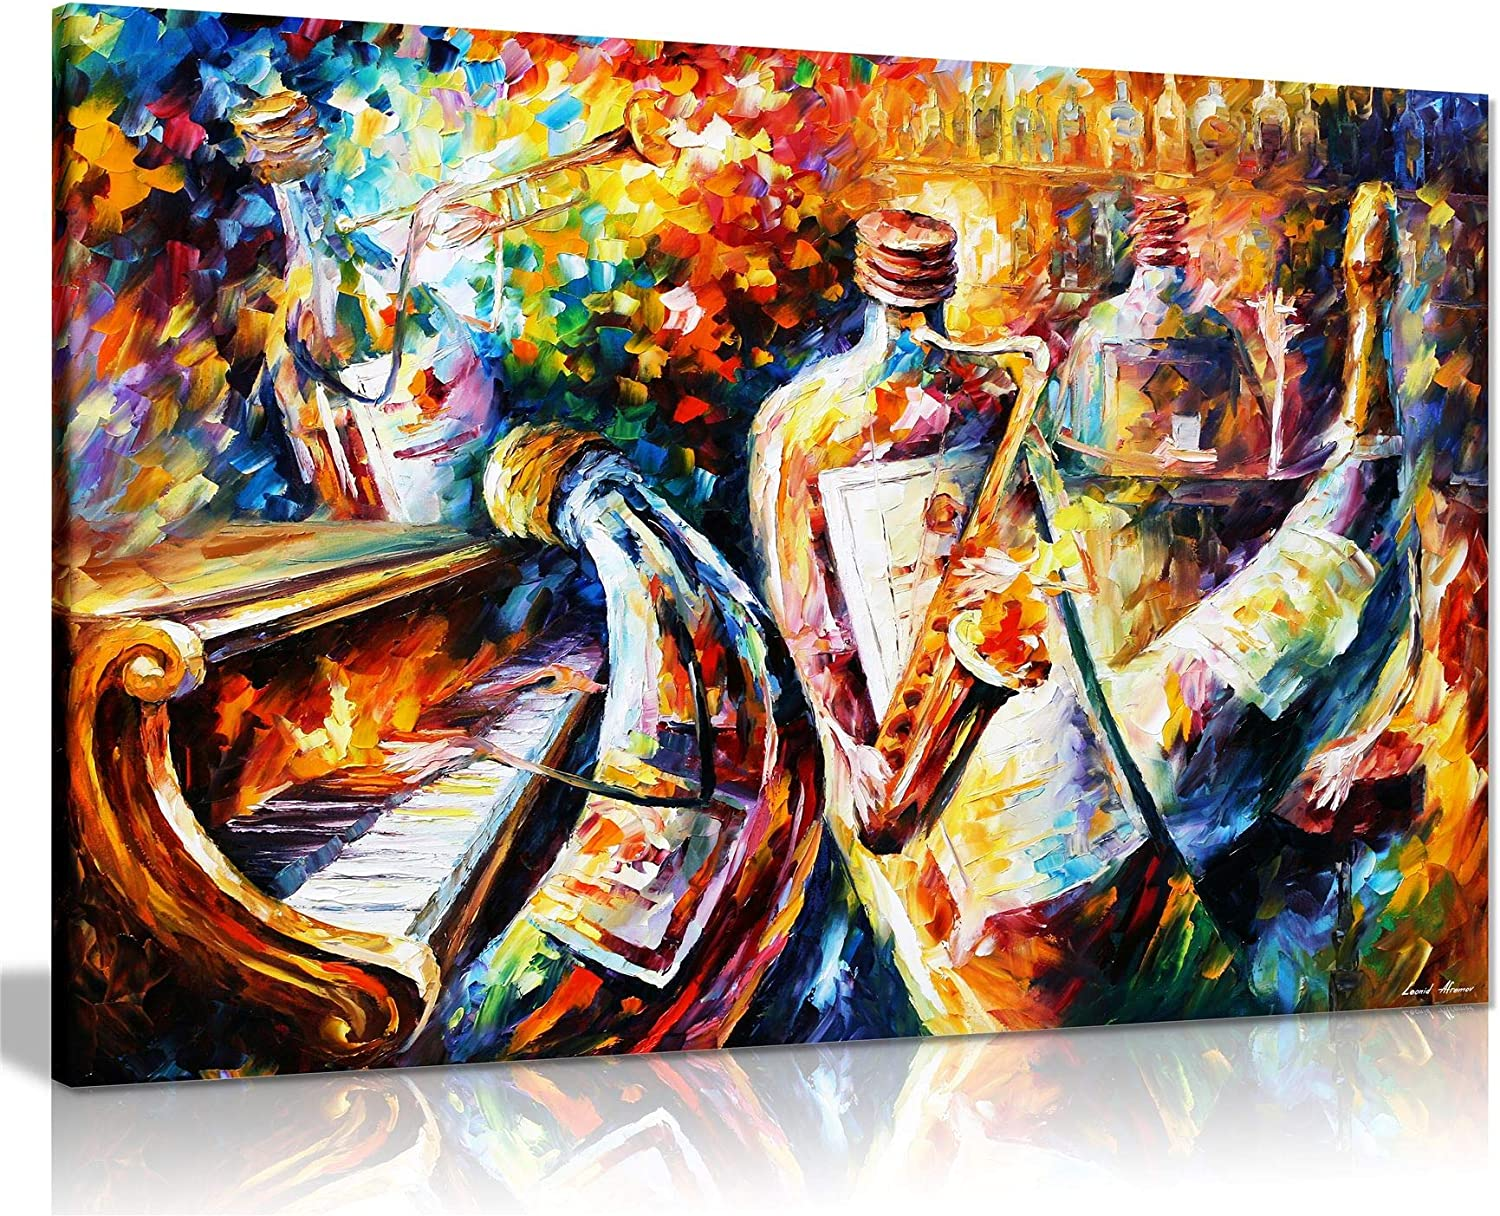 Bottle Jazz by Leonid Afremov Canvas Wall Art Picture Print for Home Decor (24x16)